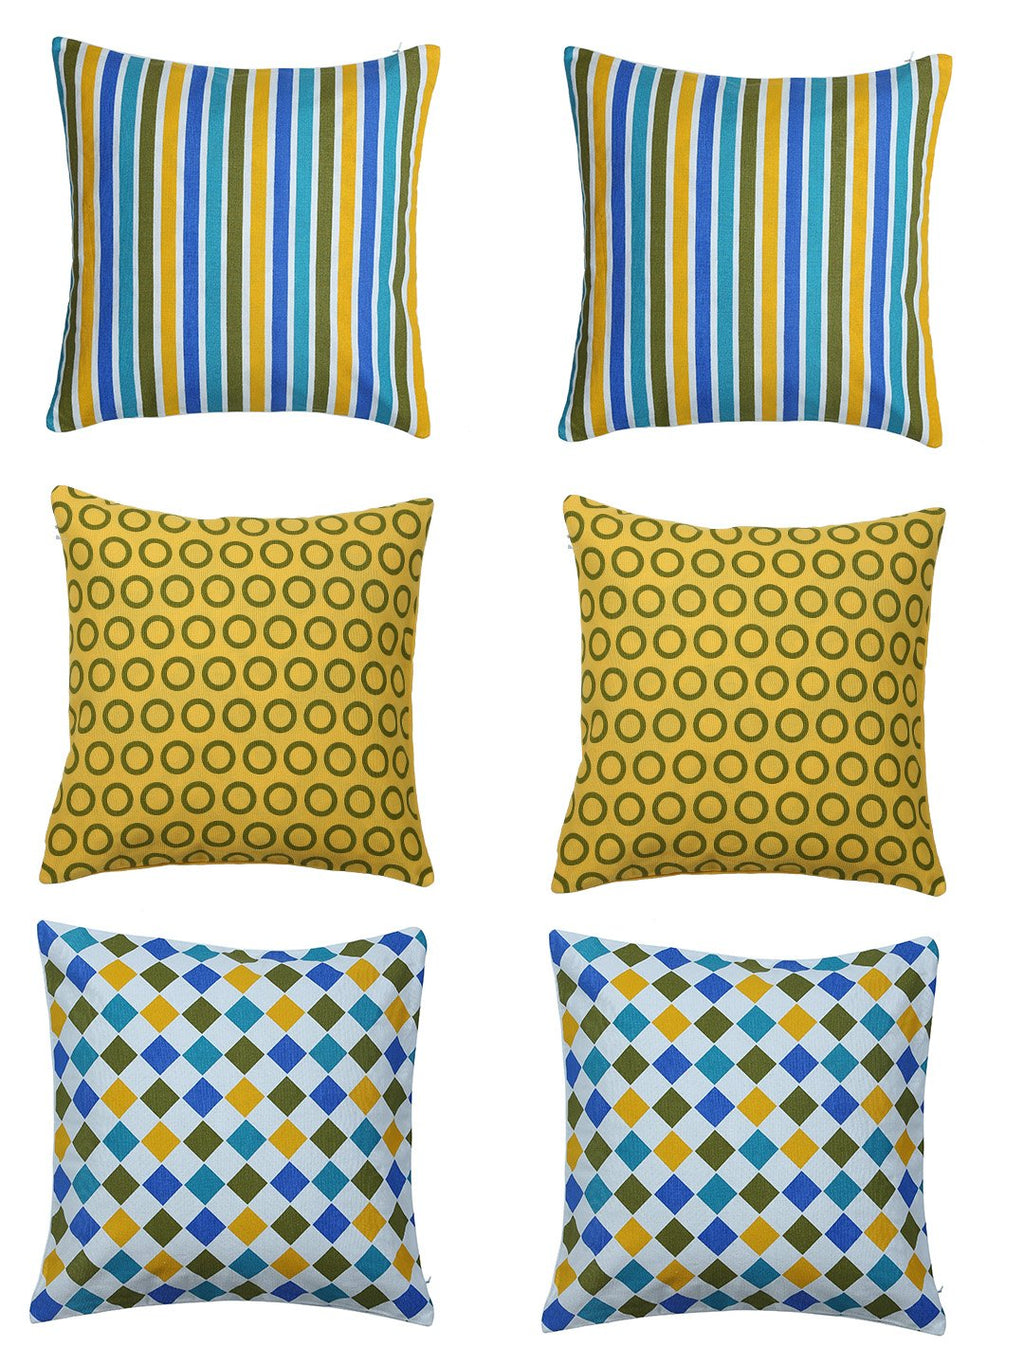 Geometrical Festival Cushion Covers